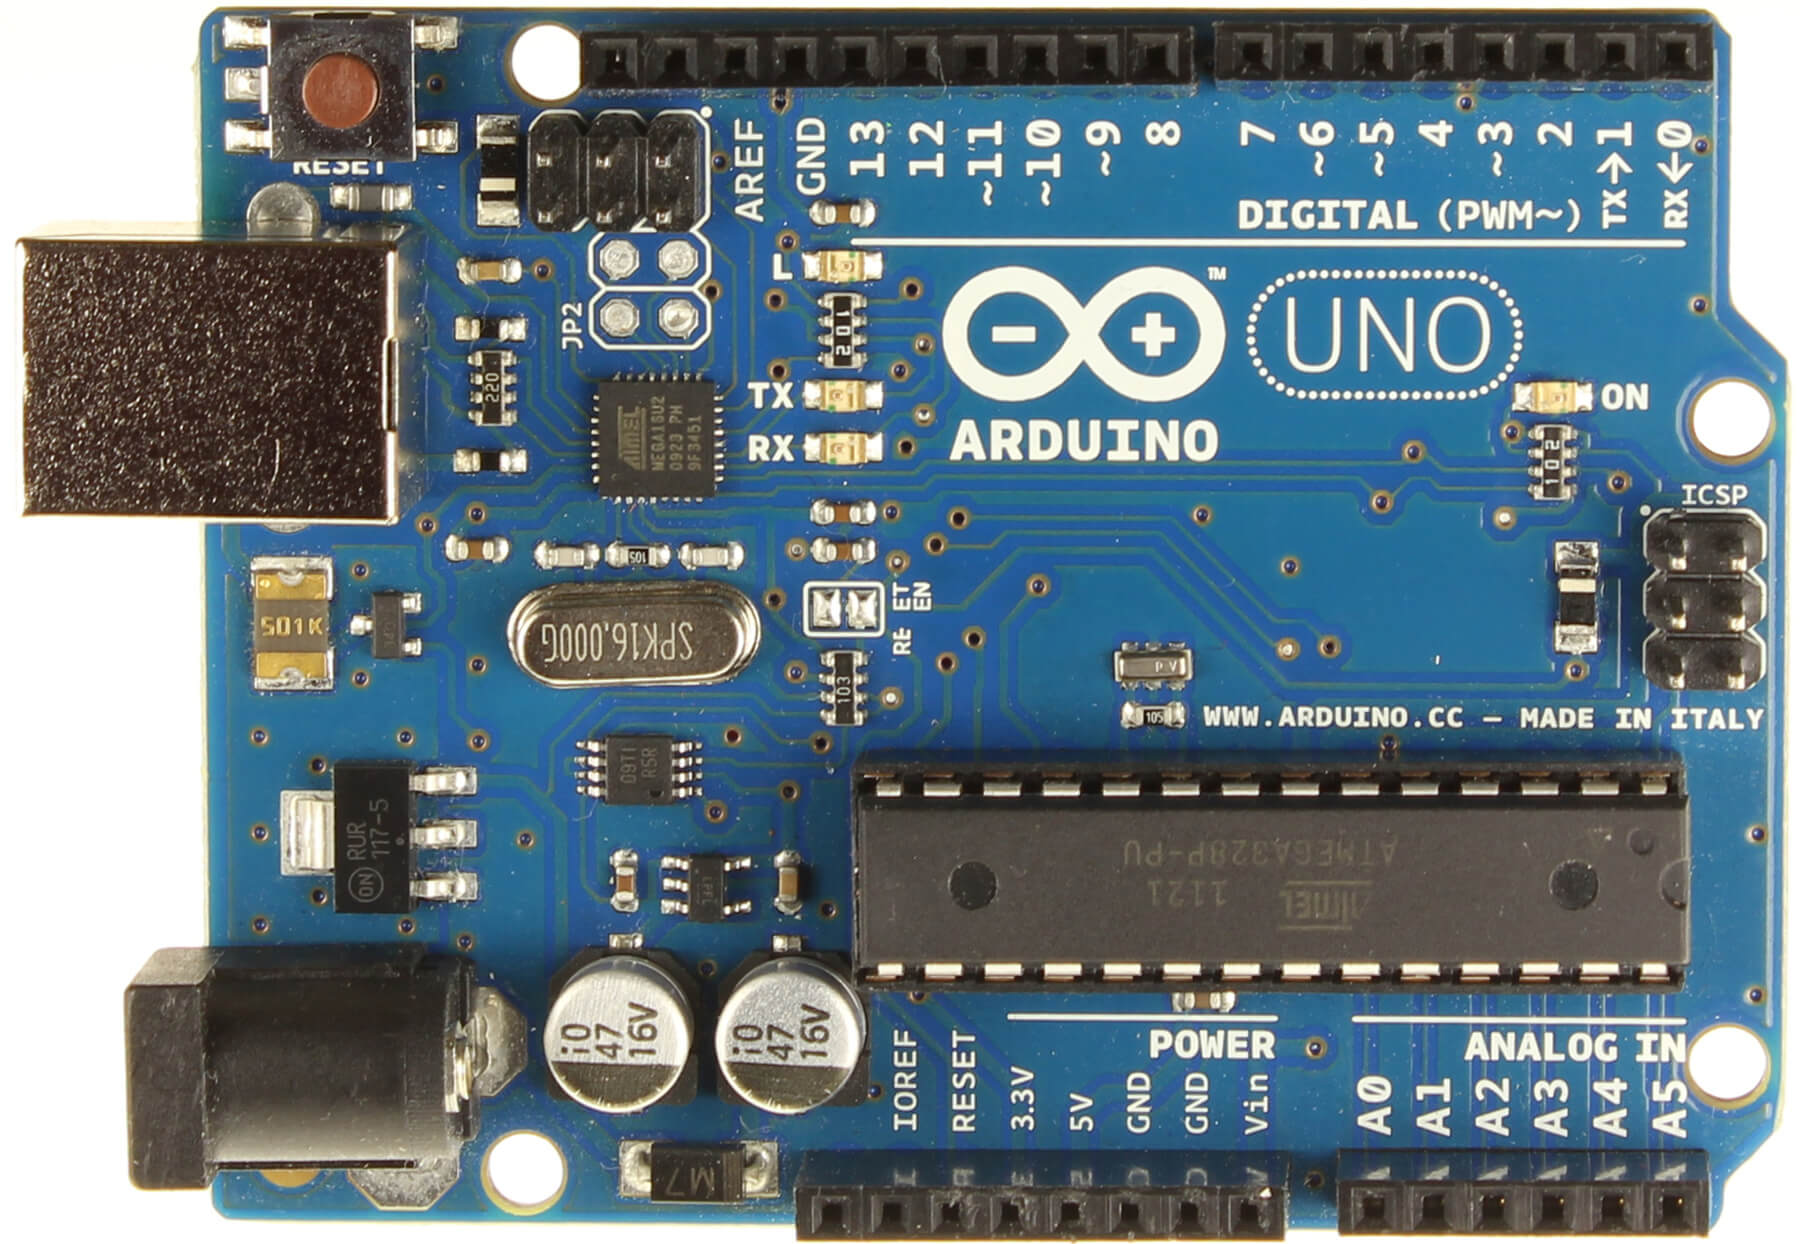 The Arduino Phenomenon: What is Next for the Popular Board?